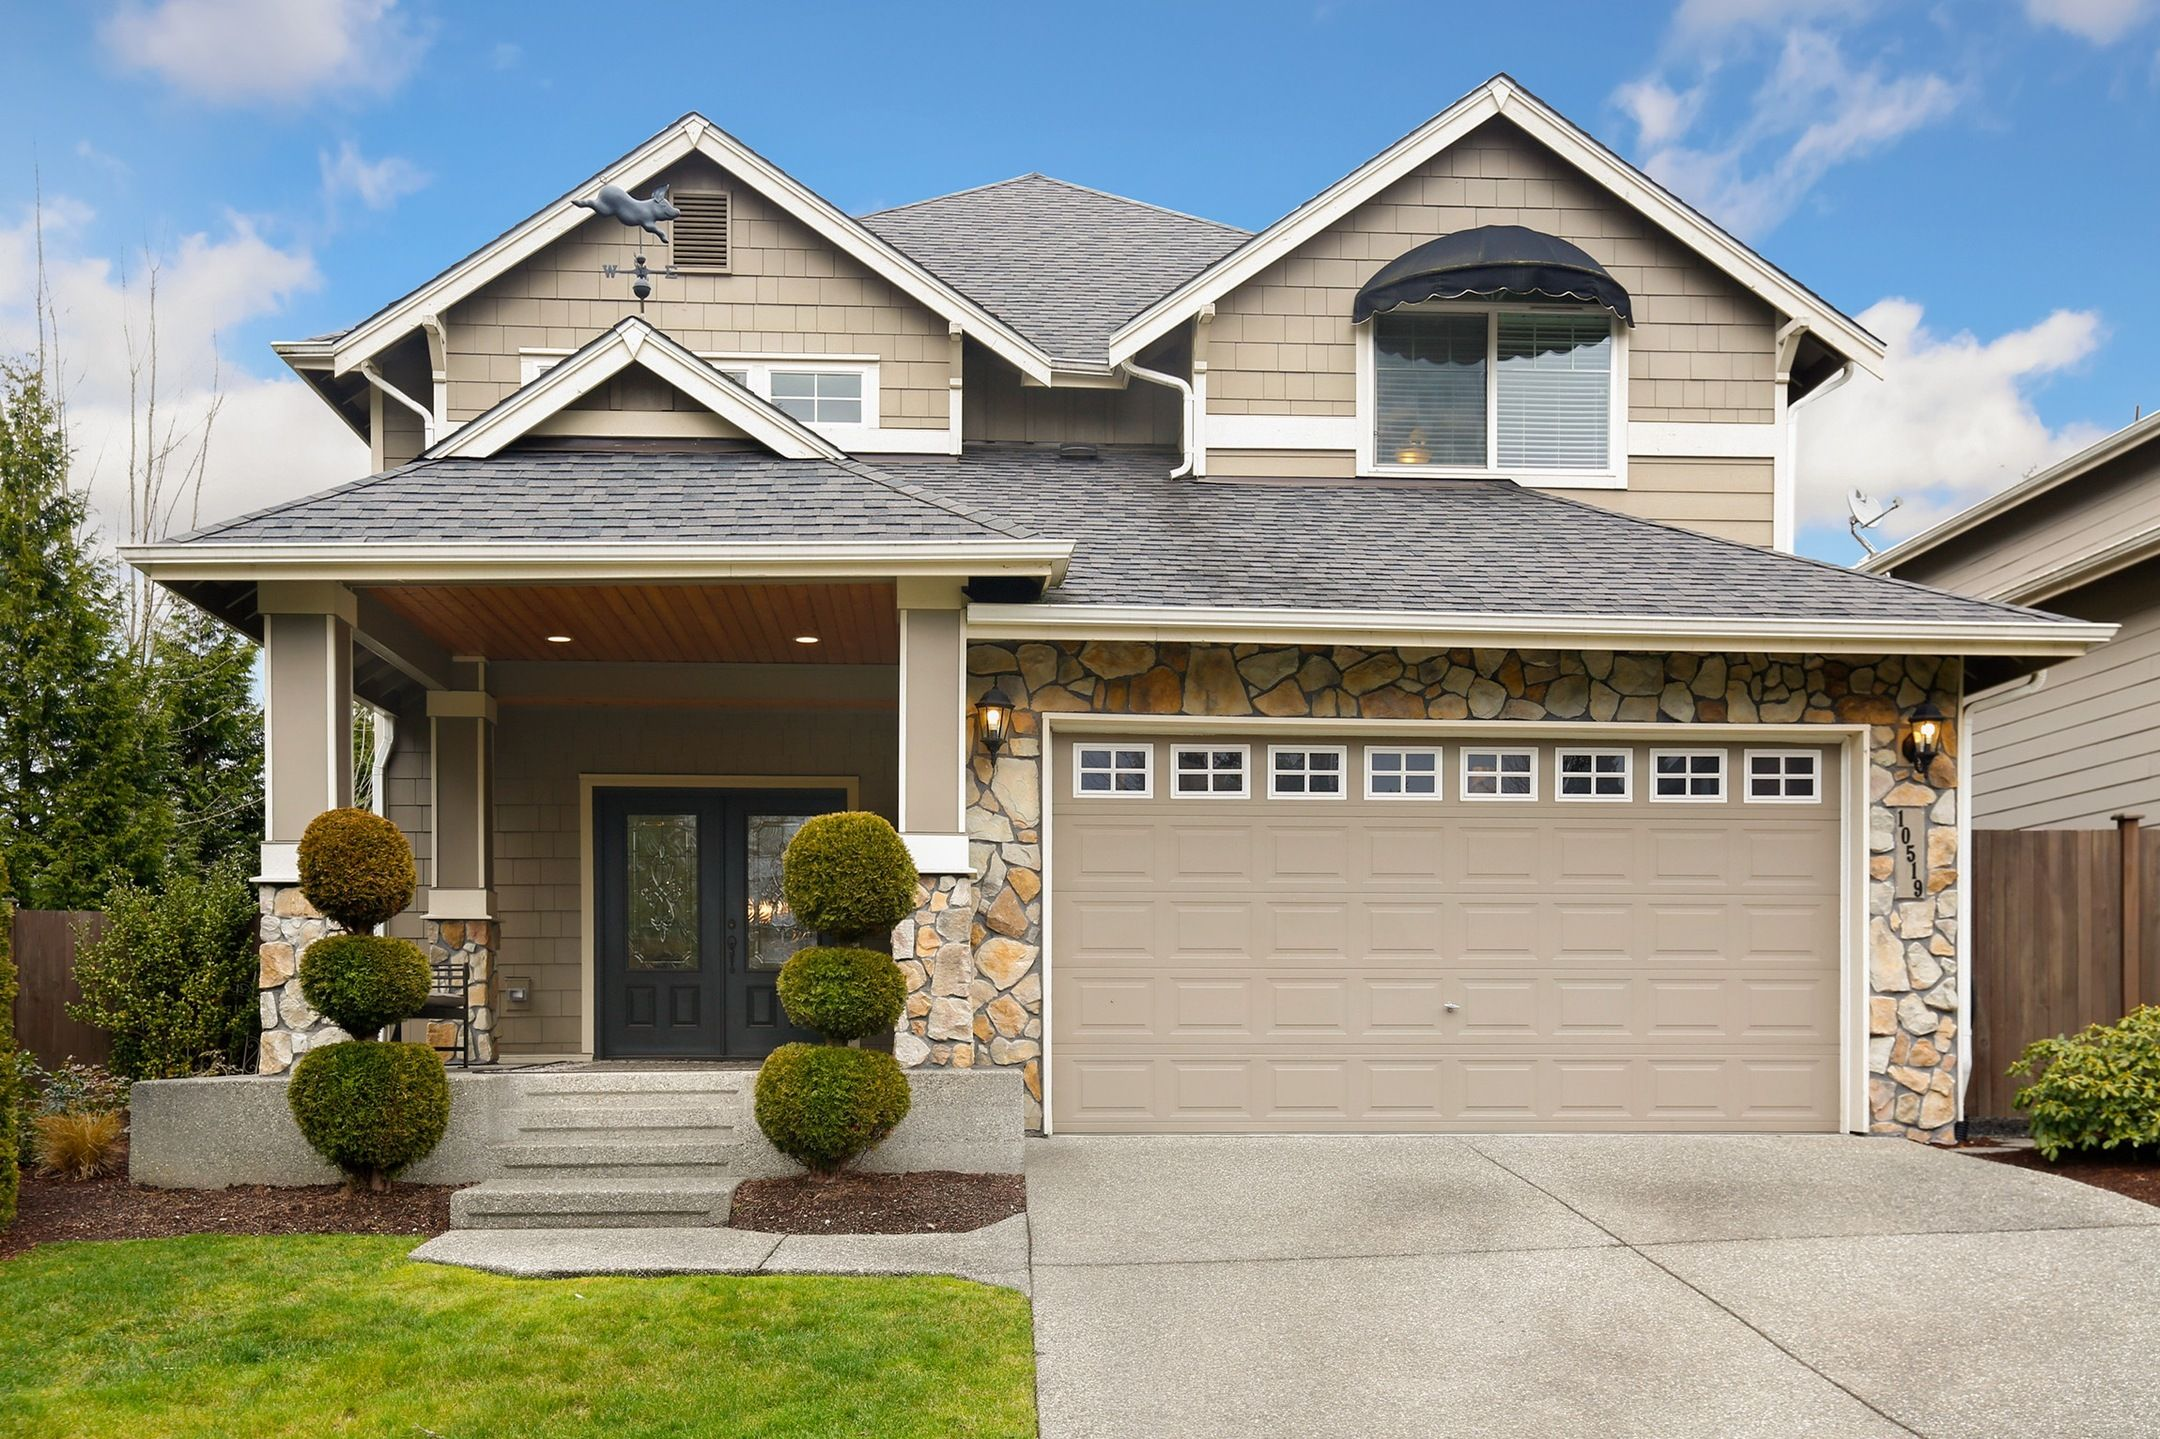 Pin on snohomish county houses for sale and open houses